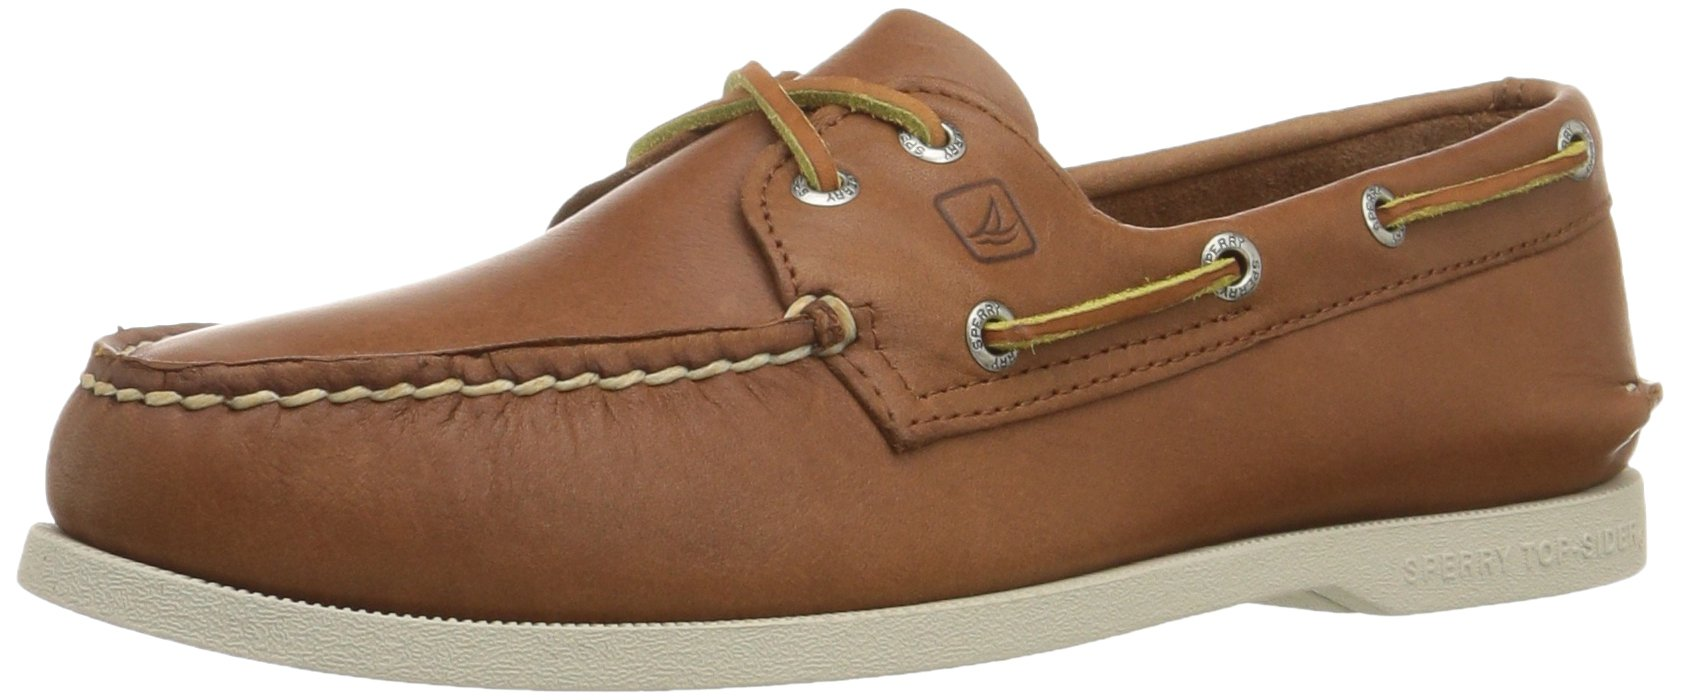 Sperry Top-Sider Men's A/O 2 Eye Boat Shoe,Tan,10.5 M US